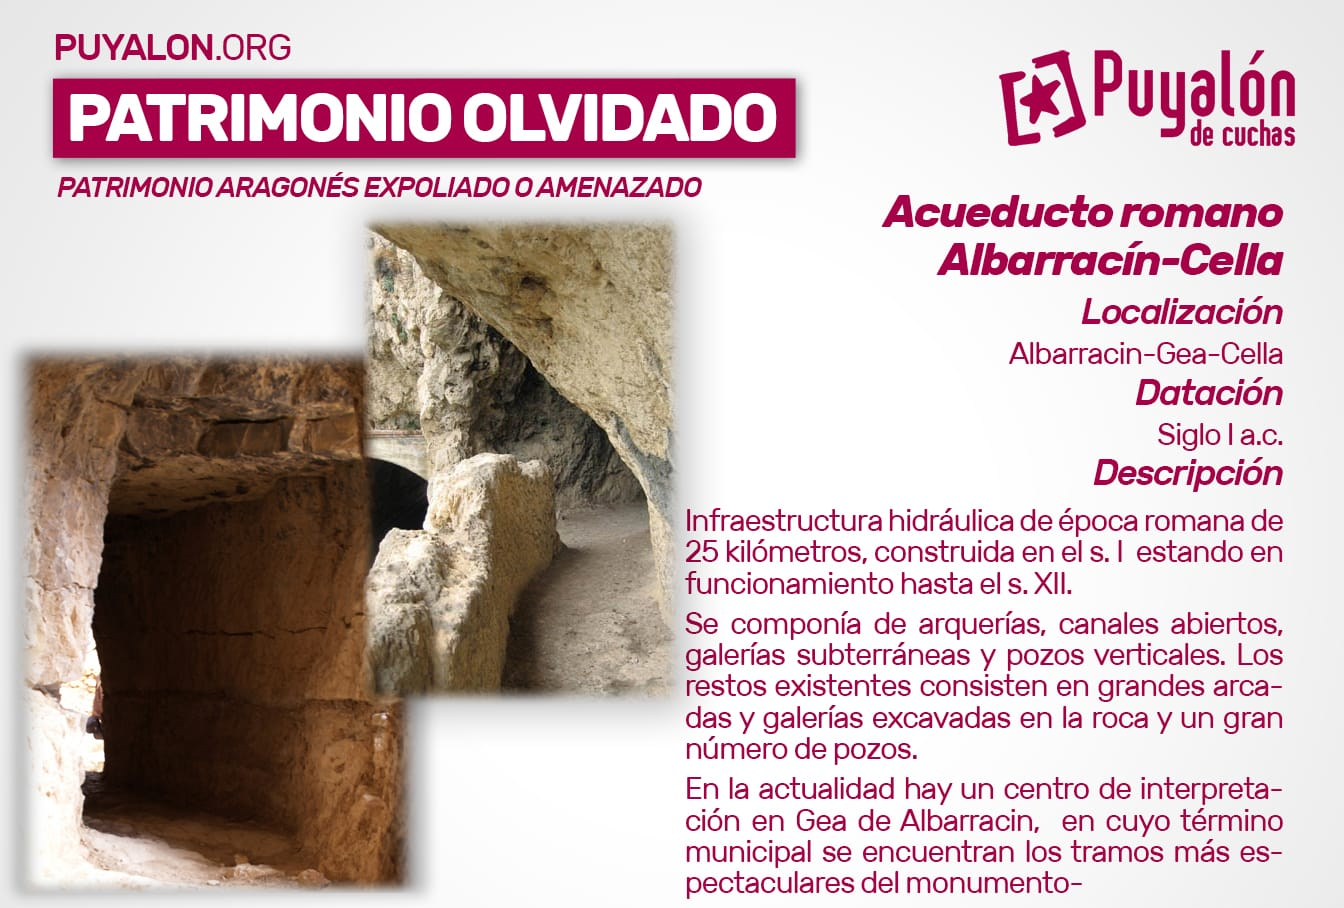 Acueducto romano Albarracín Cella